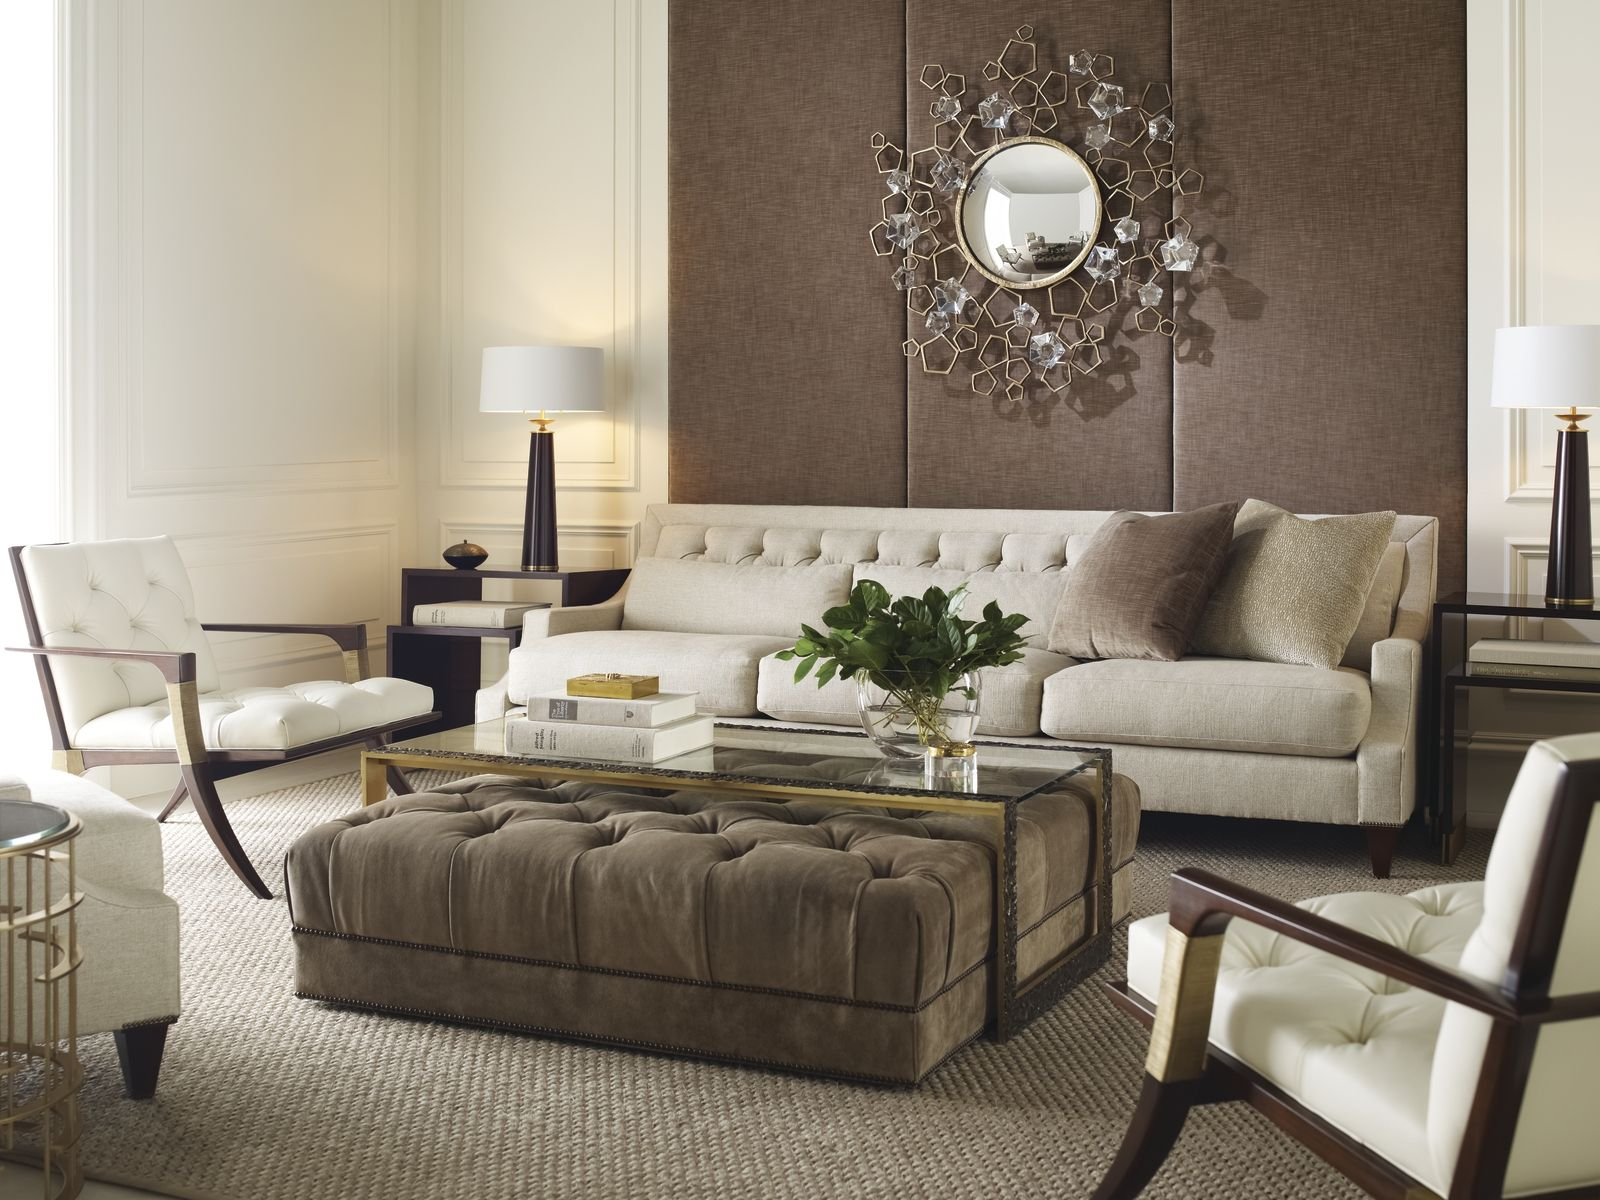 Thomas Pheasant Collection Http Www Bakerfurniture Com Baker